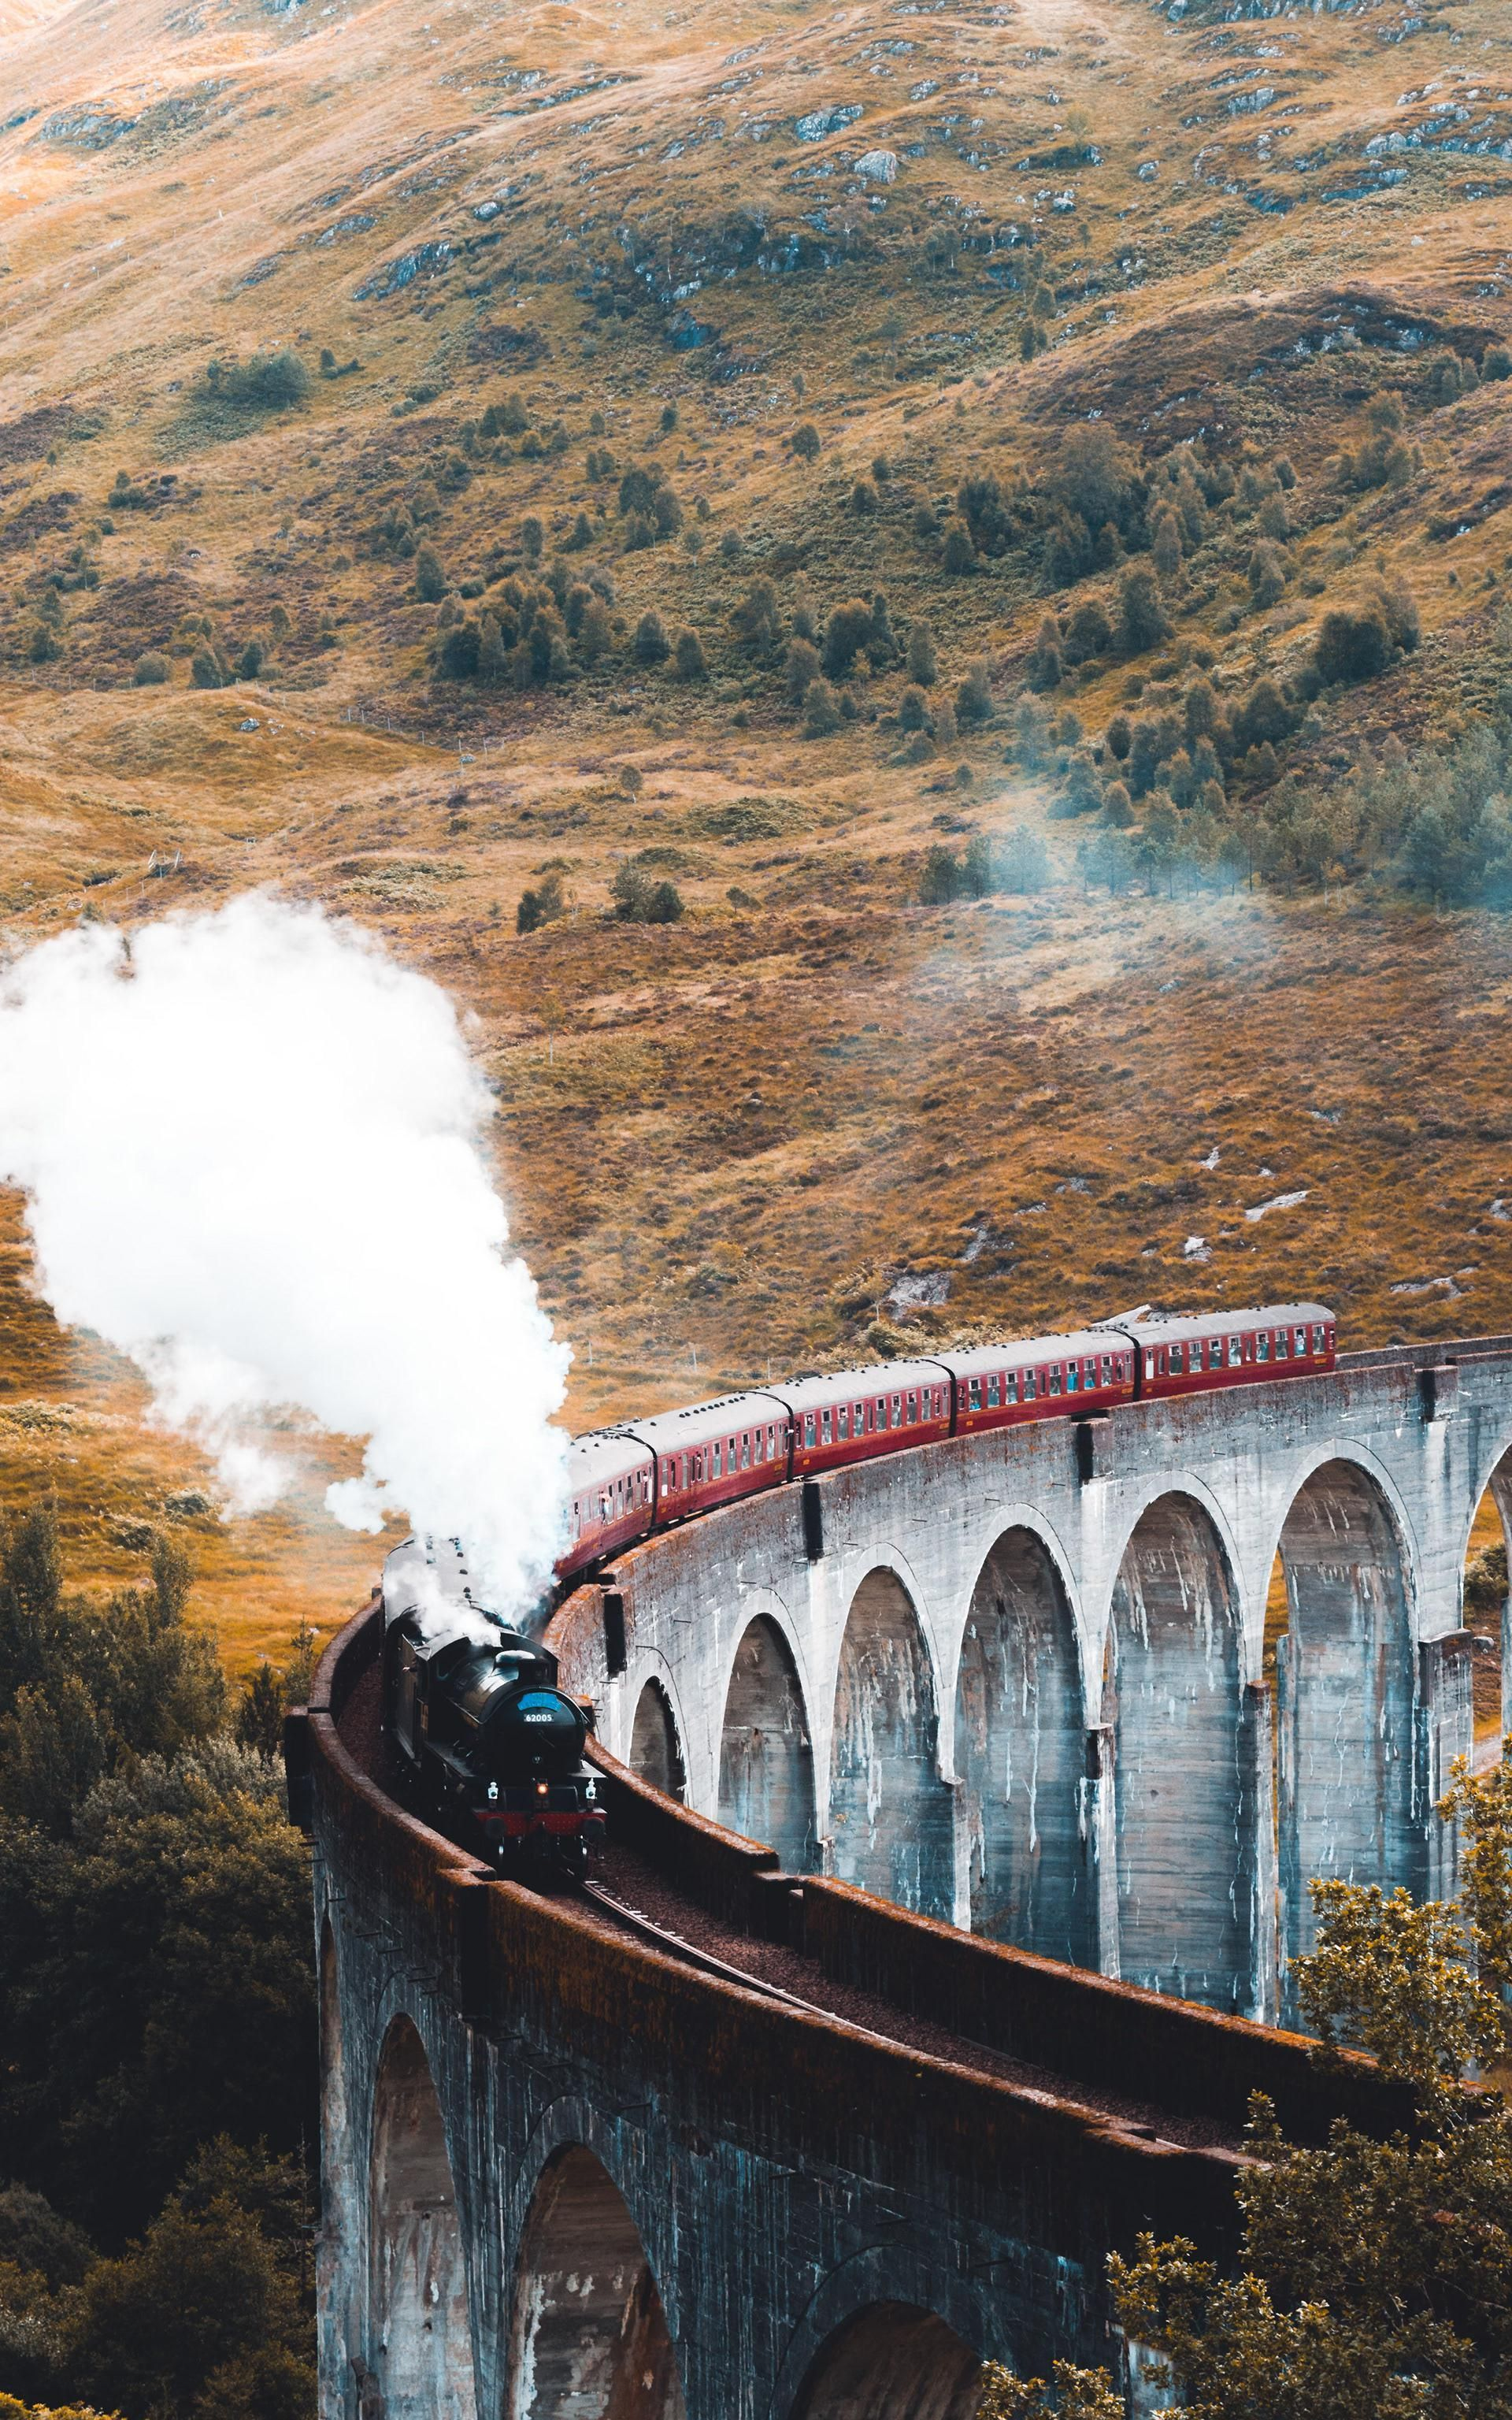 ITAP of the Hogwarts Express in Scotland